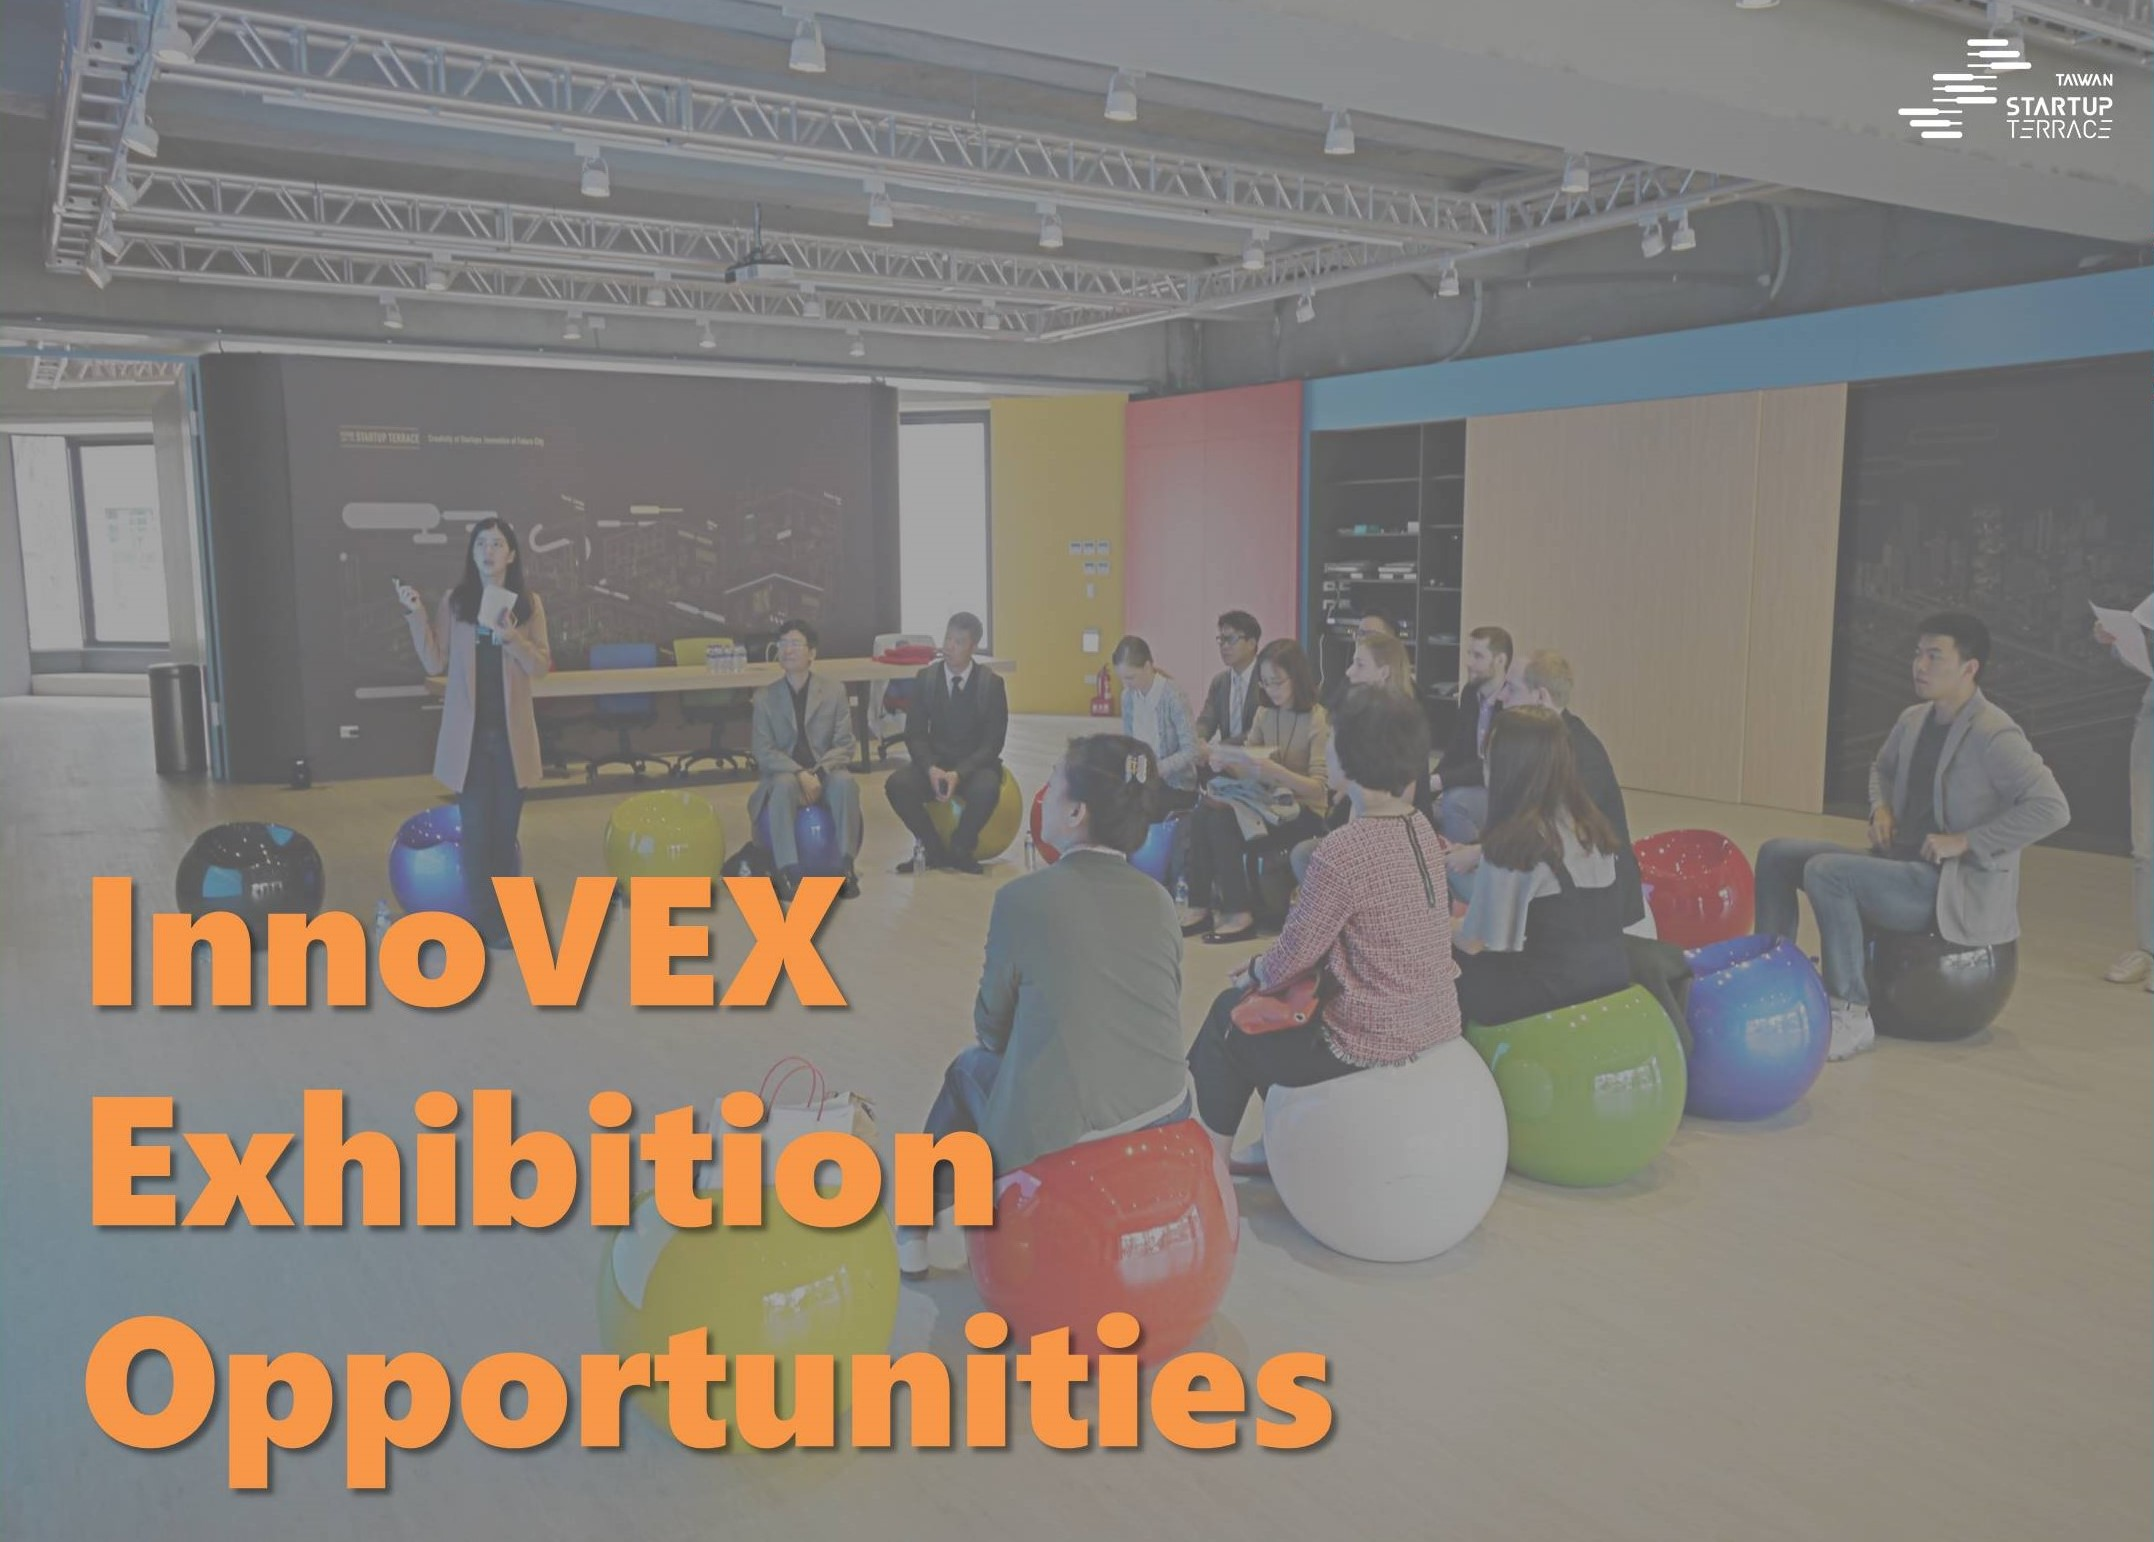 Startup Terrace Theme Pavilion news : InnoVEX 2020 Postponed To September 28-30, 2020 Due To COVID-19.